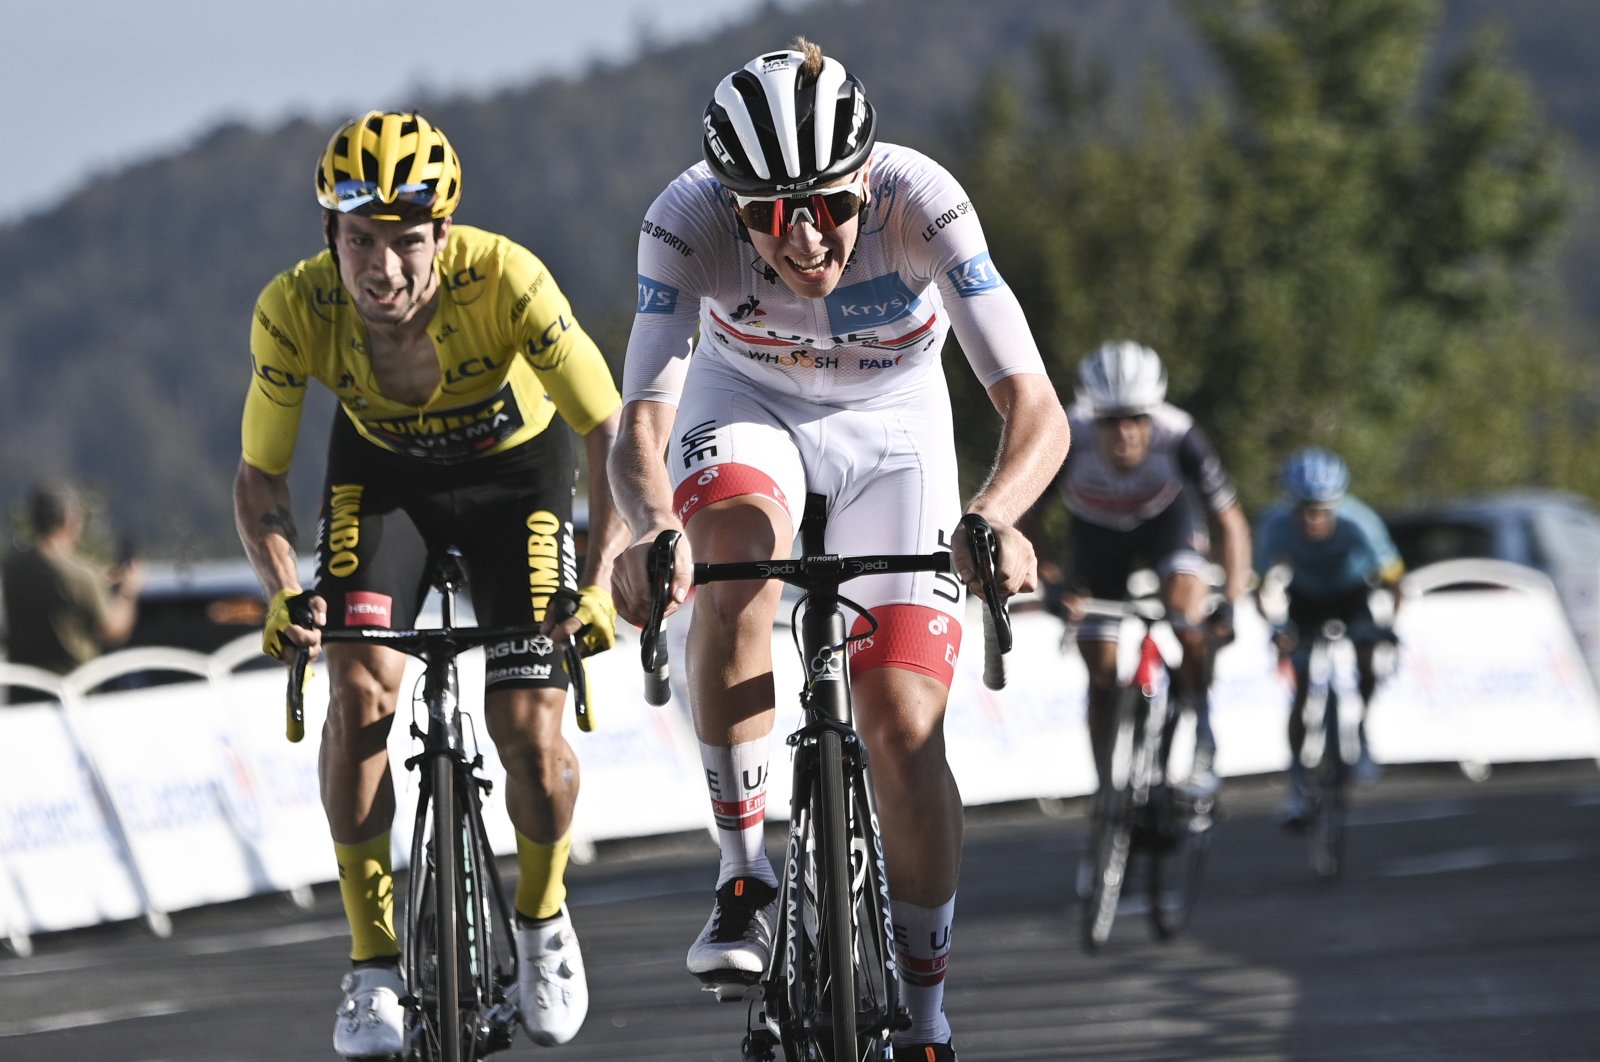 Slovenia's Tadej Pogacar (C) wins stage 15 of the Tour de France cycling race over 174.5 kilometers from Lyon to Grand Colombier pass, France, Sept. 13, 2020. (AP Photo)